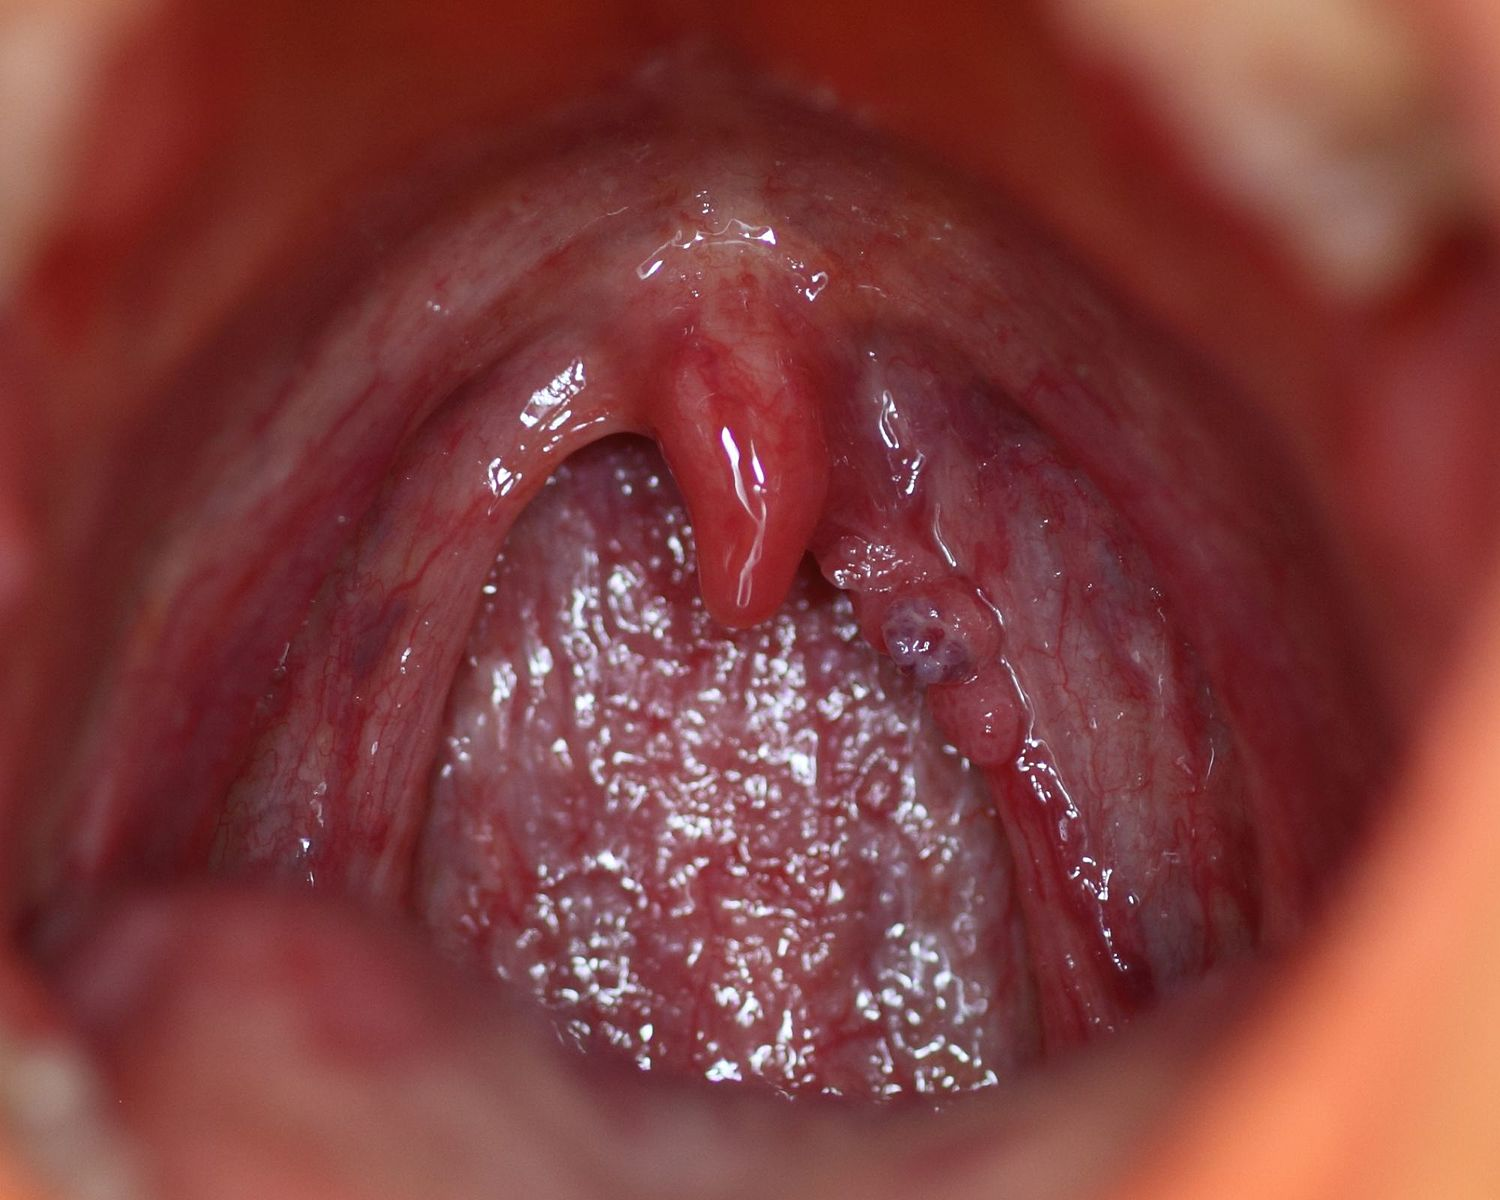 hpv lesion bleeding